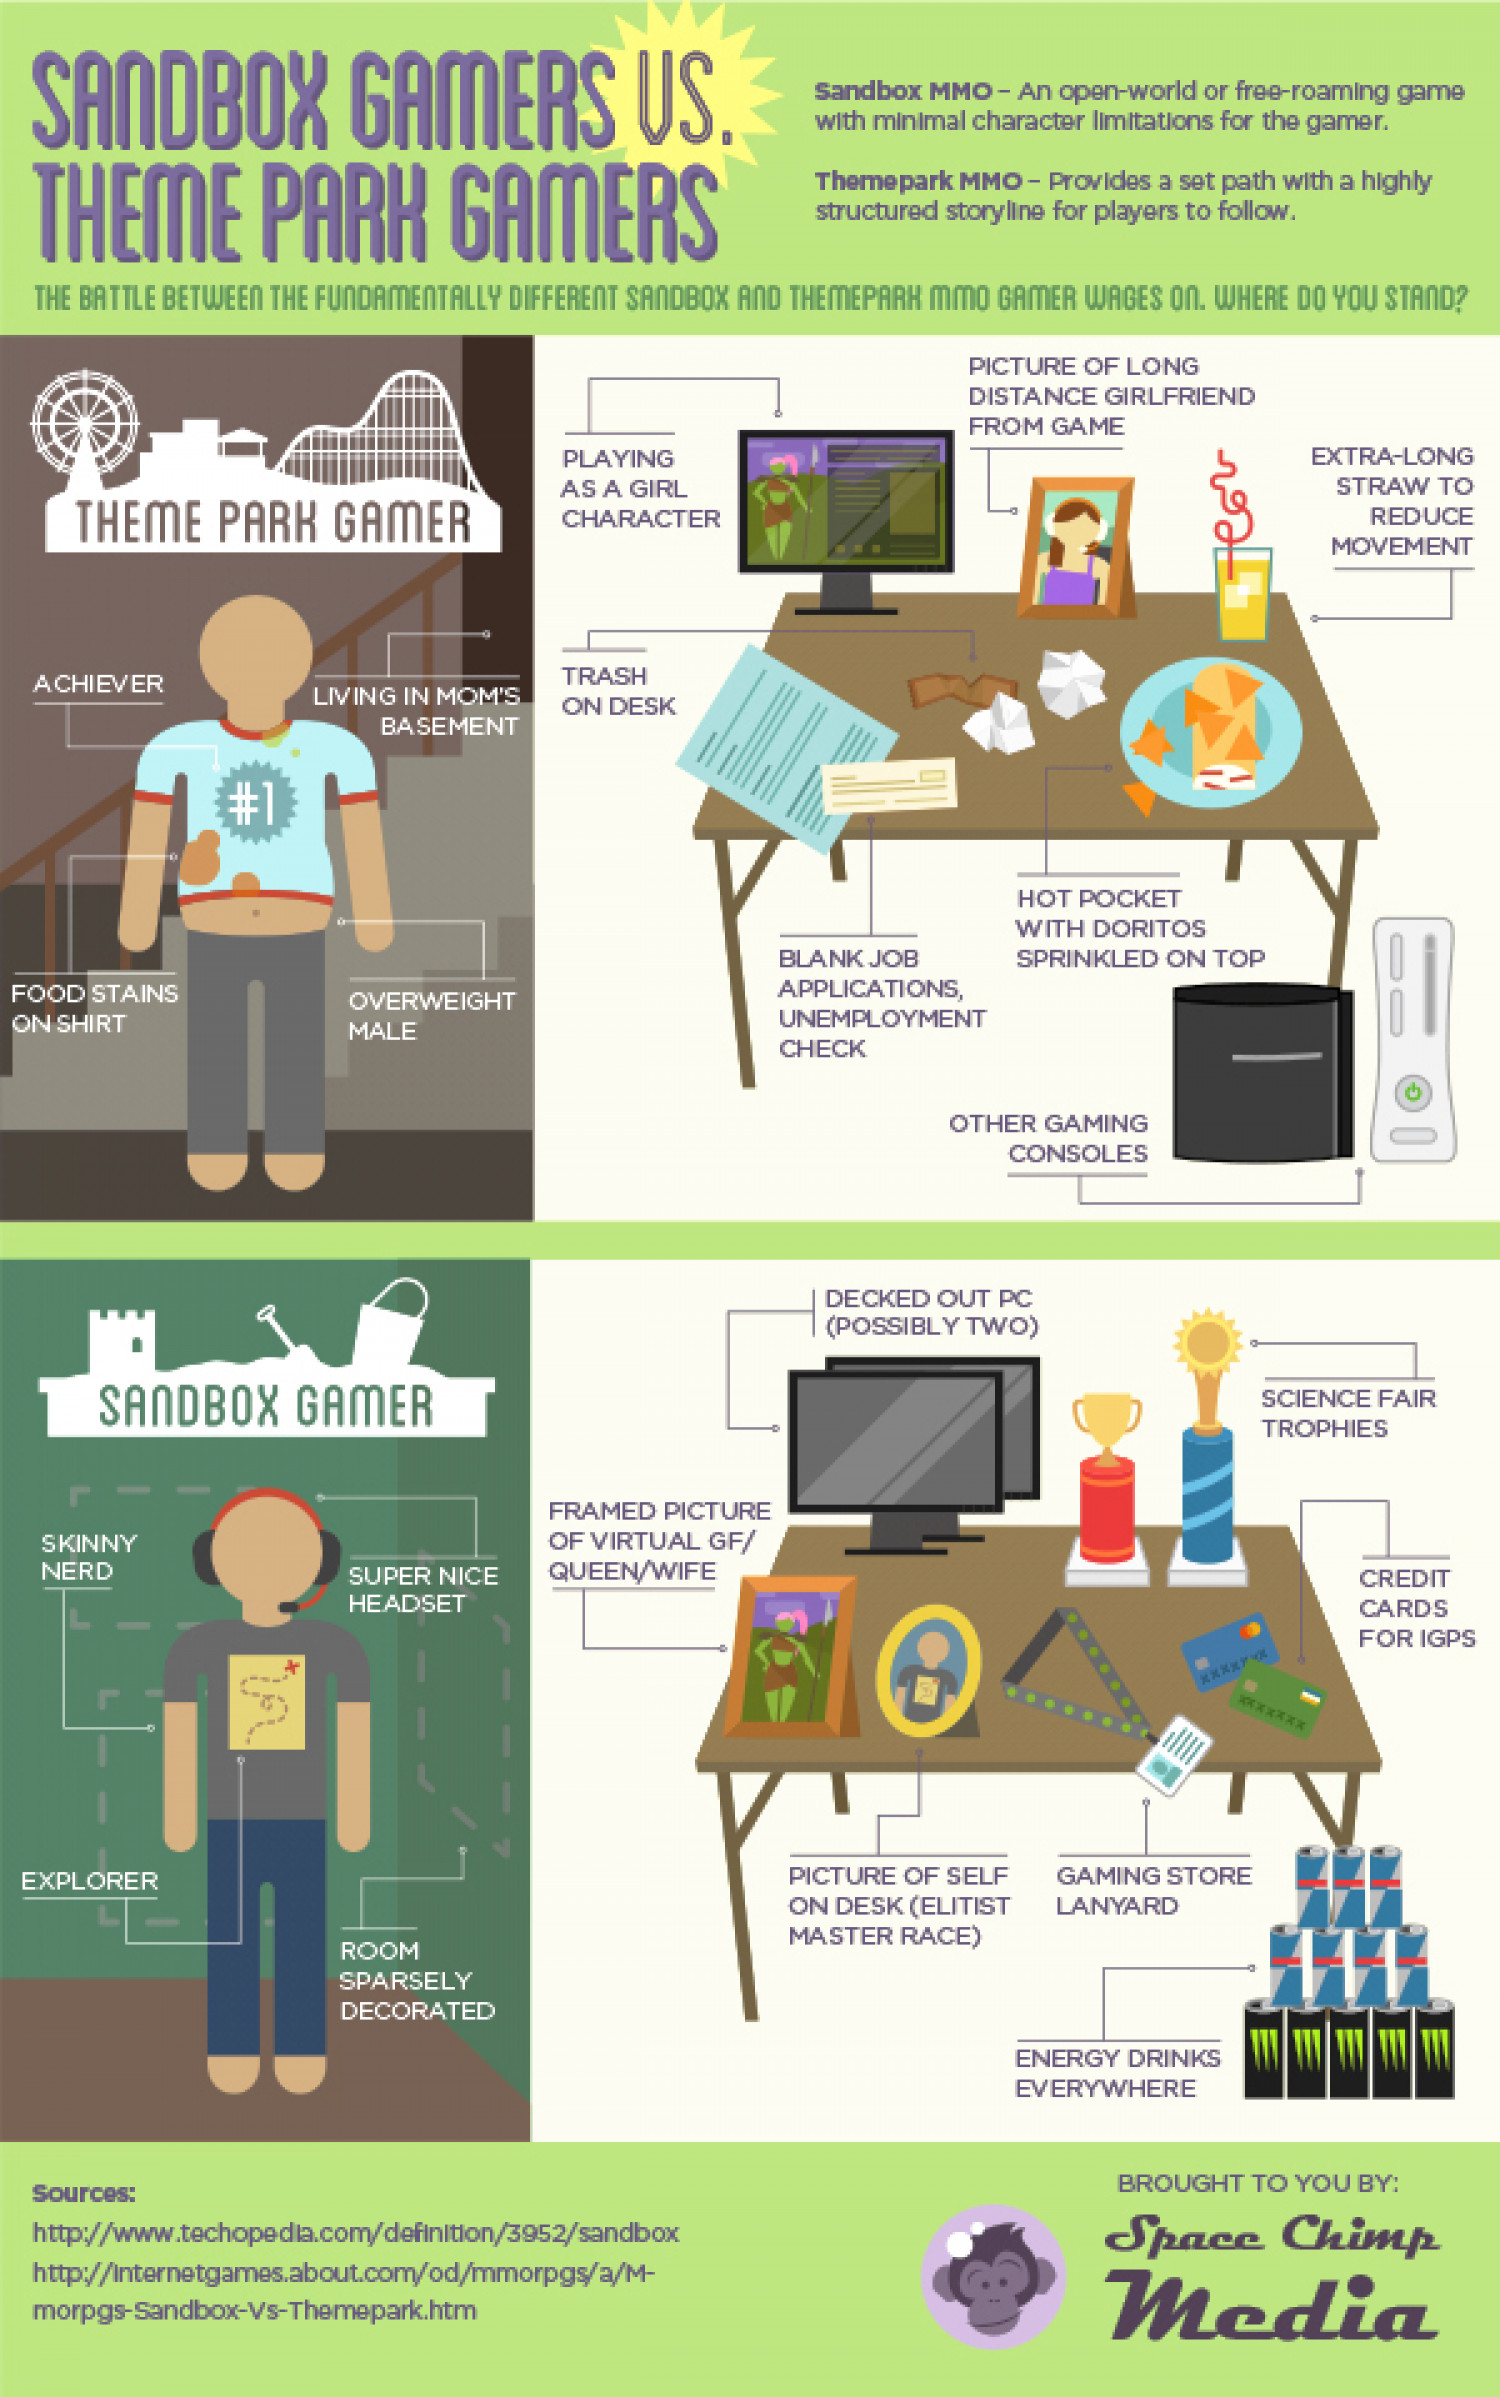 Sandbox Gamers vs. Theme Park Gamers Infographic